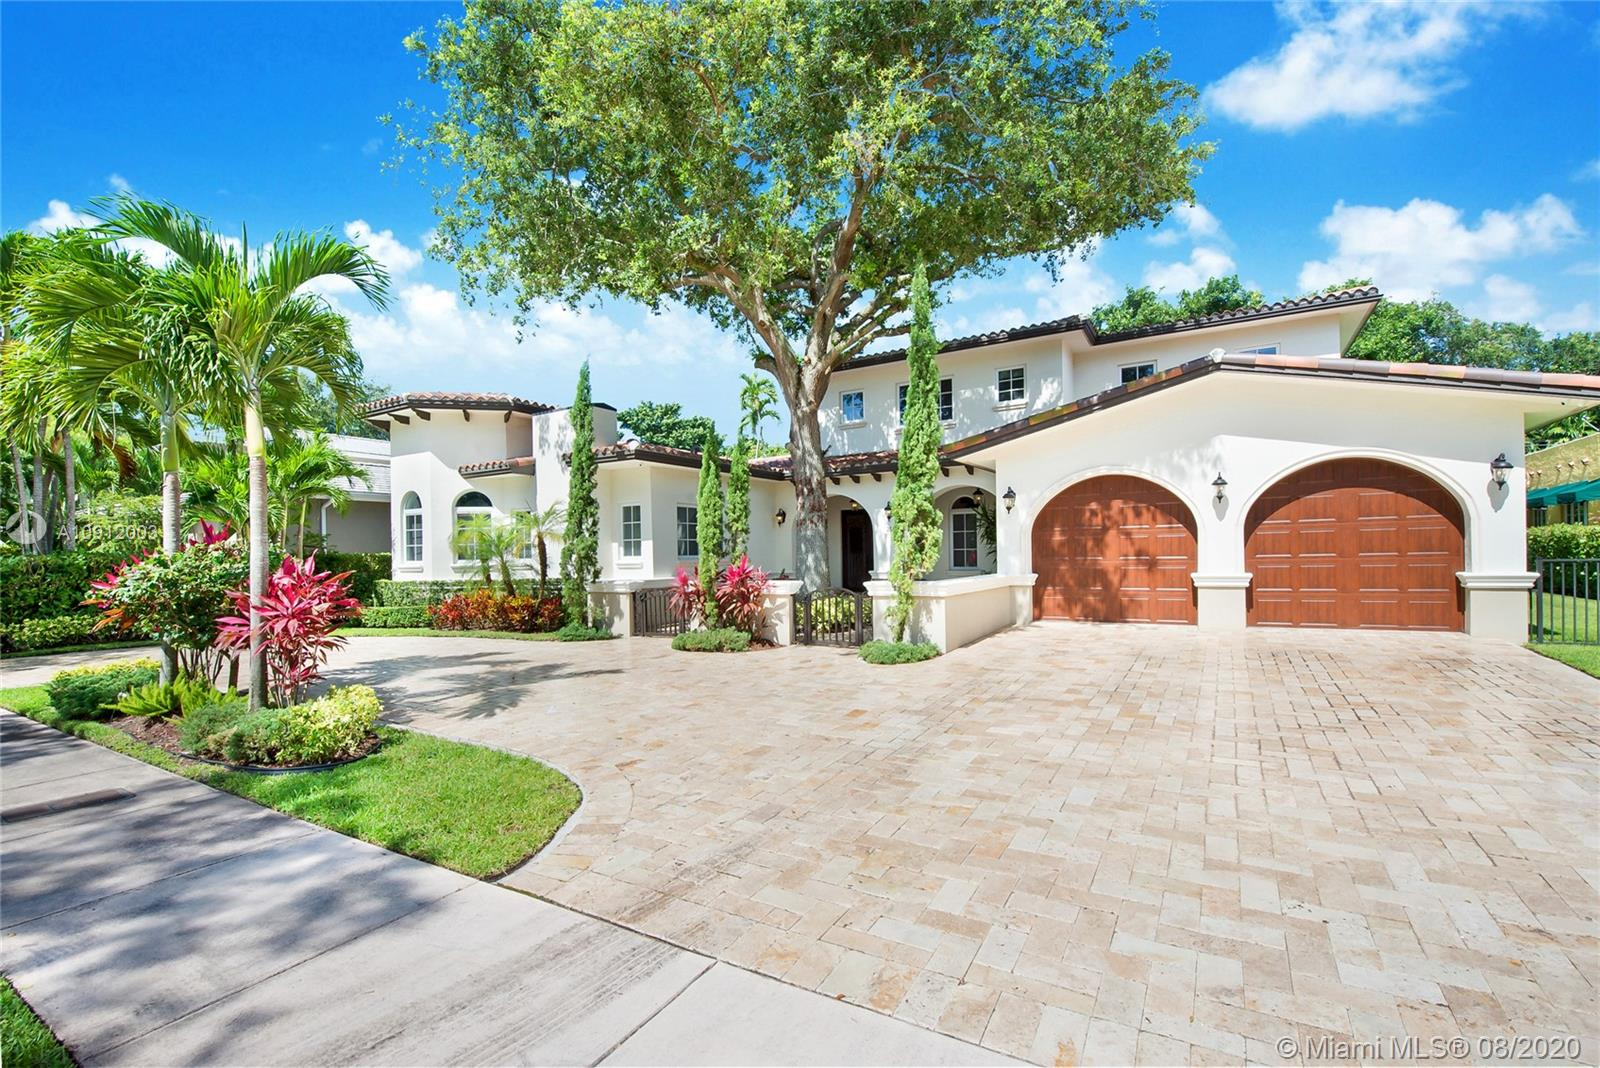 Spectacular one of a kind Home in the Heart of the Gables. Rare Opportunity to own this Gem on a huge triple lot. House boasts a beautiful courtyard entrance centered around a grand oak, circular driveway,2 car garage.Features 6 bedrooms, 6 and a half bath including a large downstairs den/office/media w/fireplace. Marble floors throughout & wood floors in bedrooms. Master suite upstairs w/2 large walk in closets, spacious bath suite & covered terrace overlooking the pool. Kitchen equip w/ Top of the line appliances include Wolf & Miele, oversized island & quartz countertops. Includes a Crestron sound system throughout, impact windows & doors, and grand ceilings. Formal dining room, family & living room that open out to covered terrace & pool. MUST SEE... NO EXPENSE SPARED...